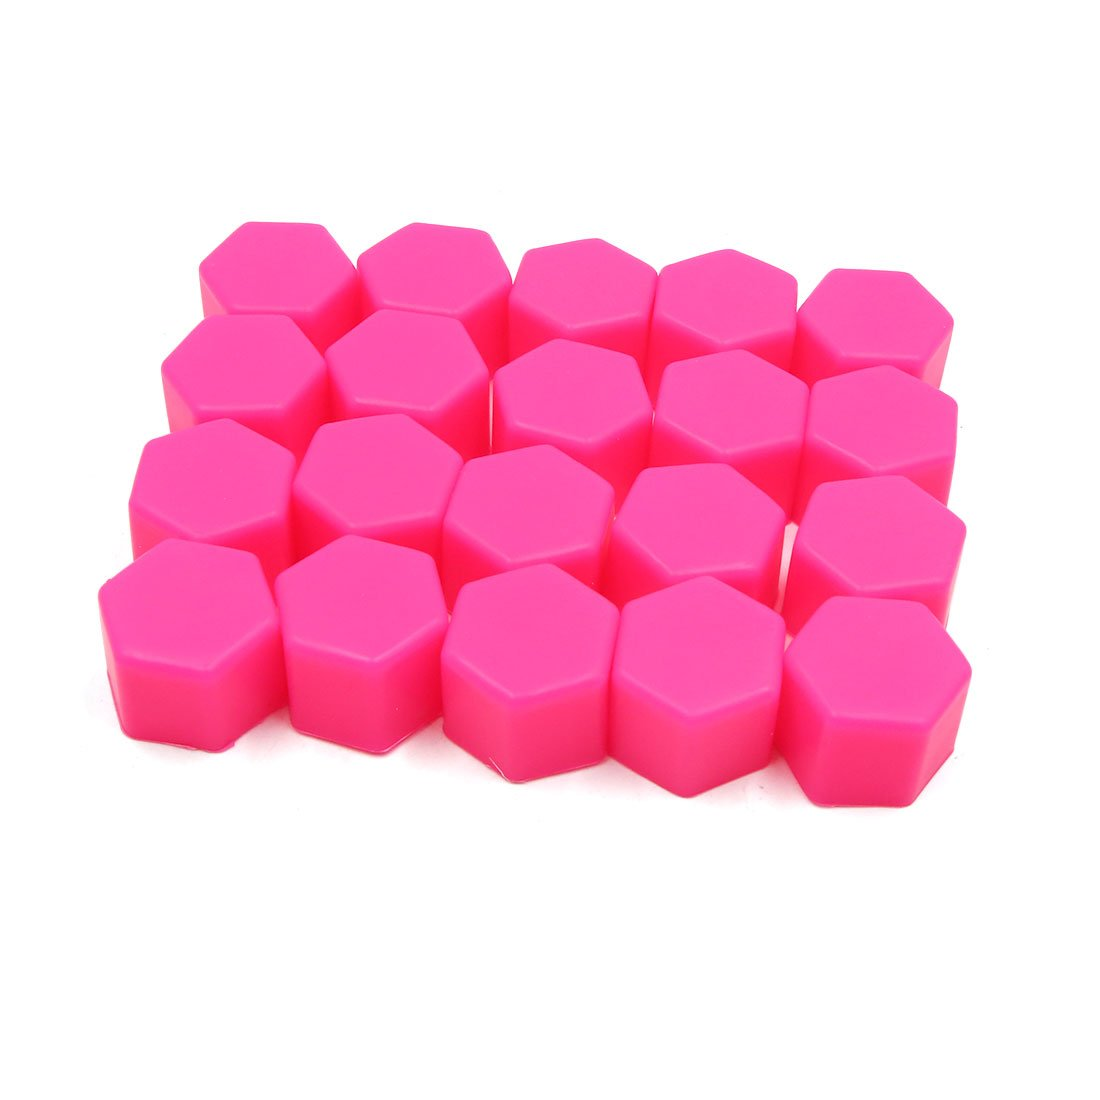 uxcell 20pcs 21mm Rubber Car Wheel Tire Nut Screw Lug Dust Cover Caps Hub Protector Pink a18042000ux0118